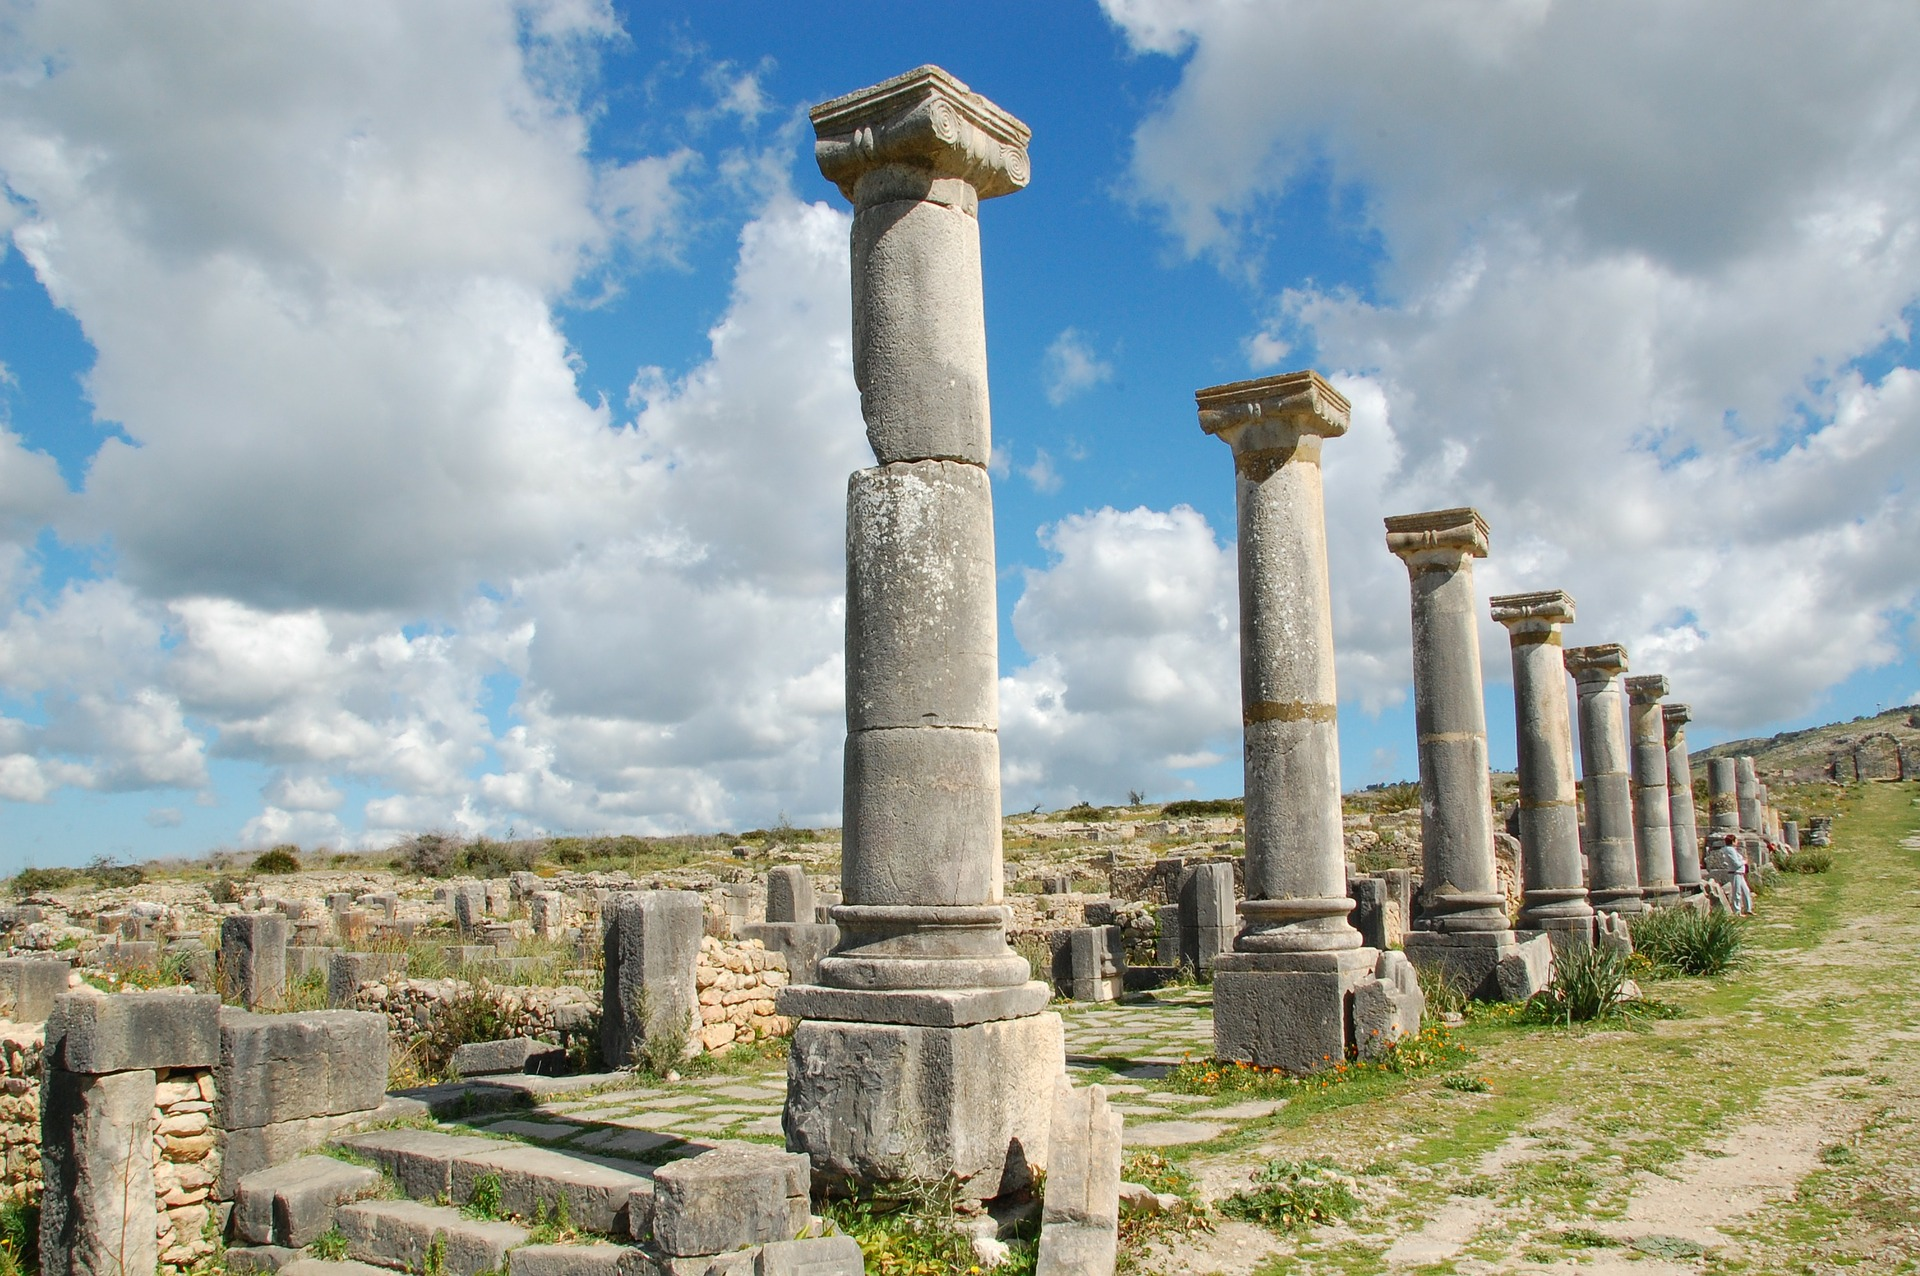 The Roman ruins from Tanger